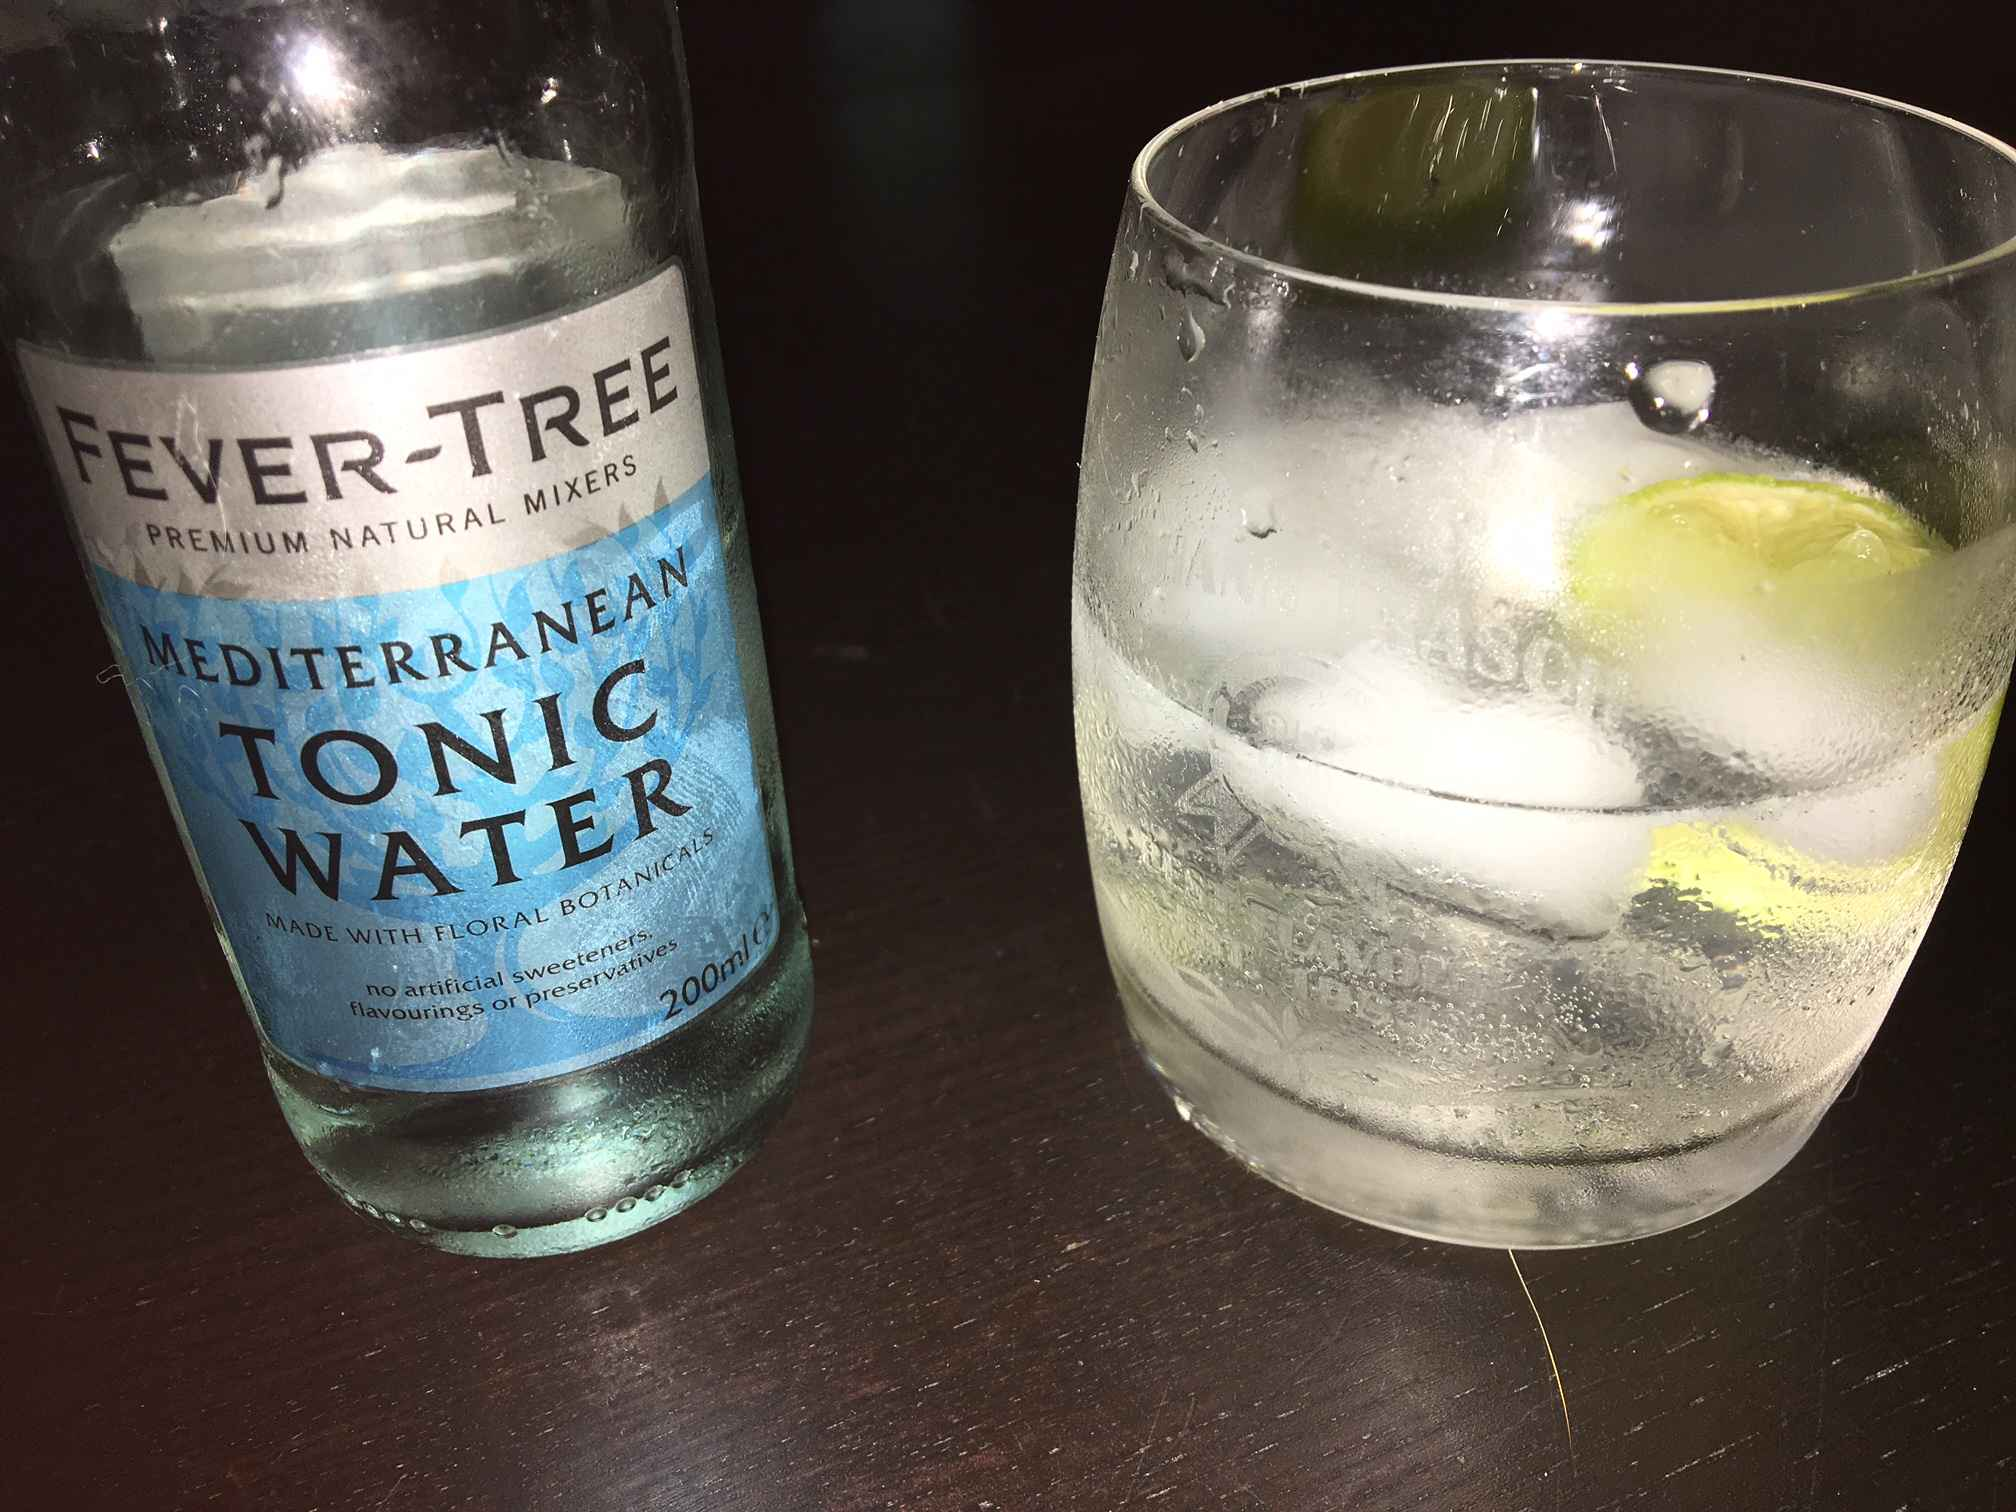 Fever Tree Mediterranean Tonic Water im Gin Tonic.